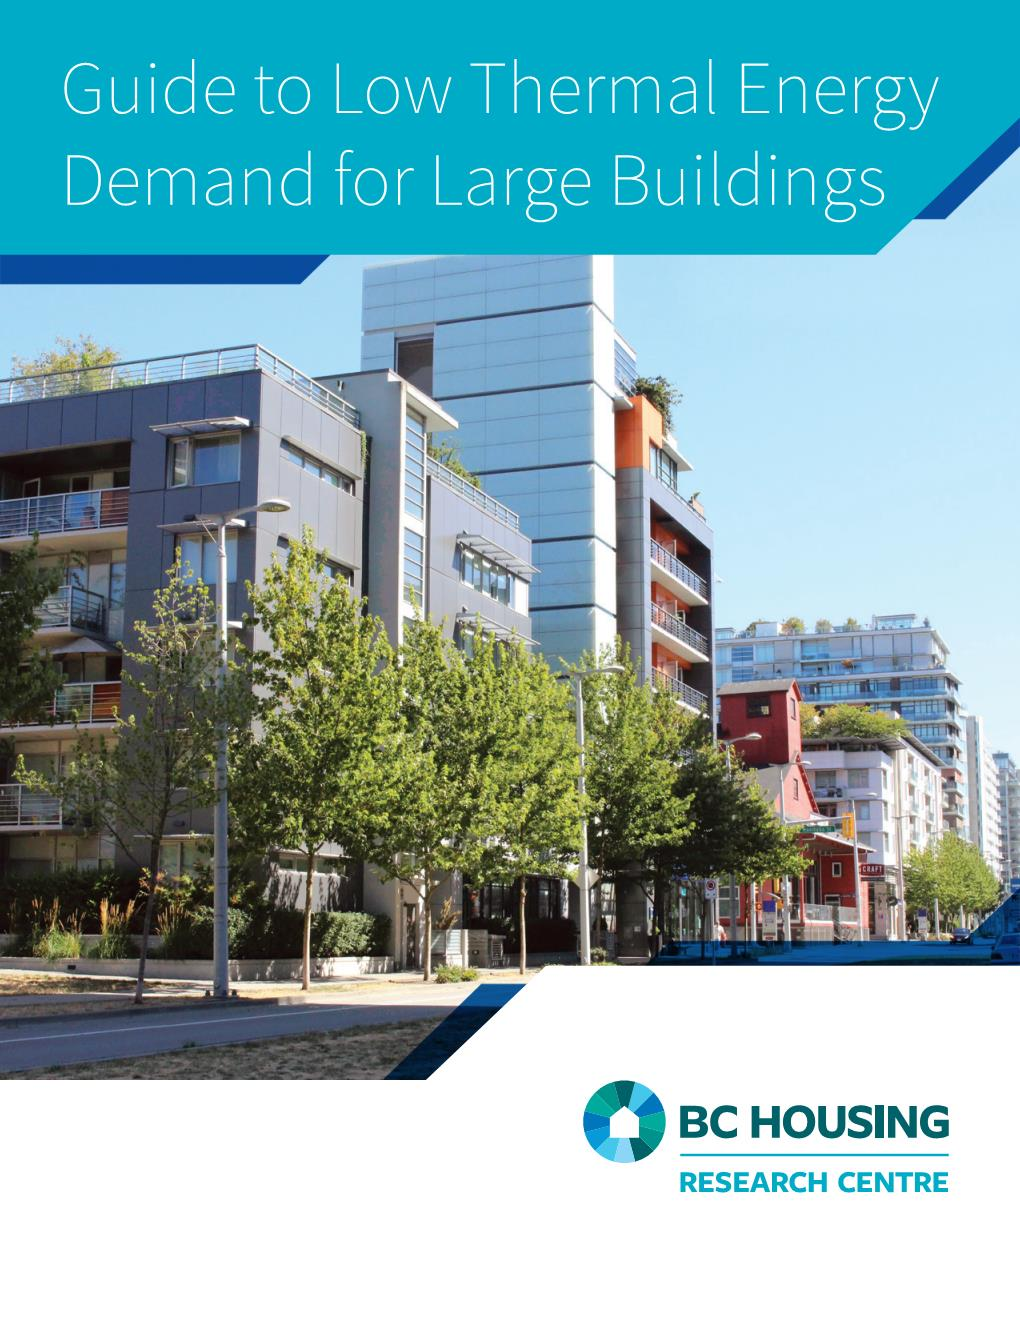 RC_Guide to Low Thermal Energy Demand for Large Buildings_Cover_IFC Page 001.jpg